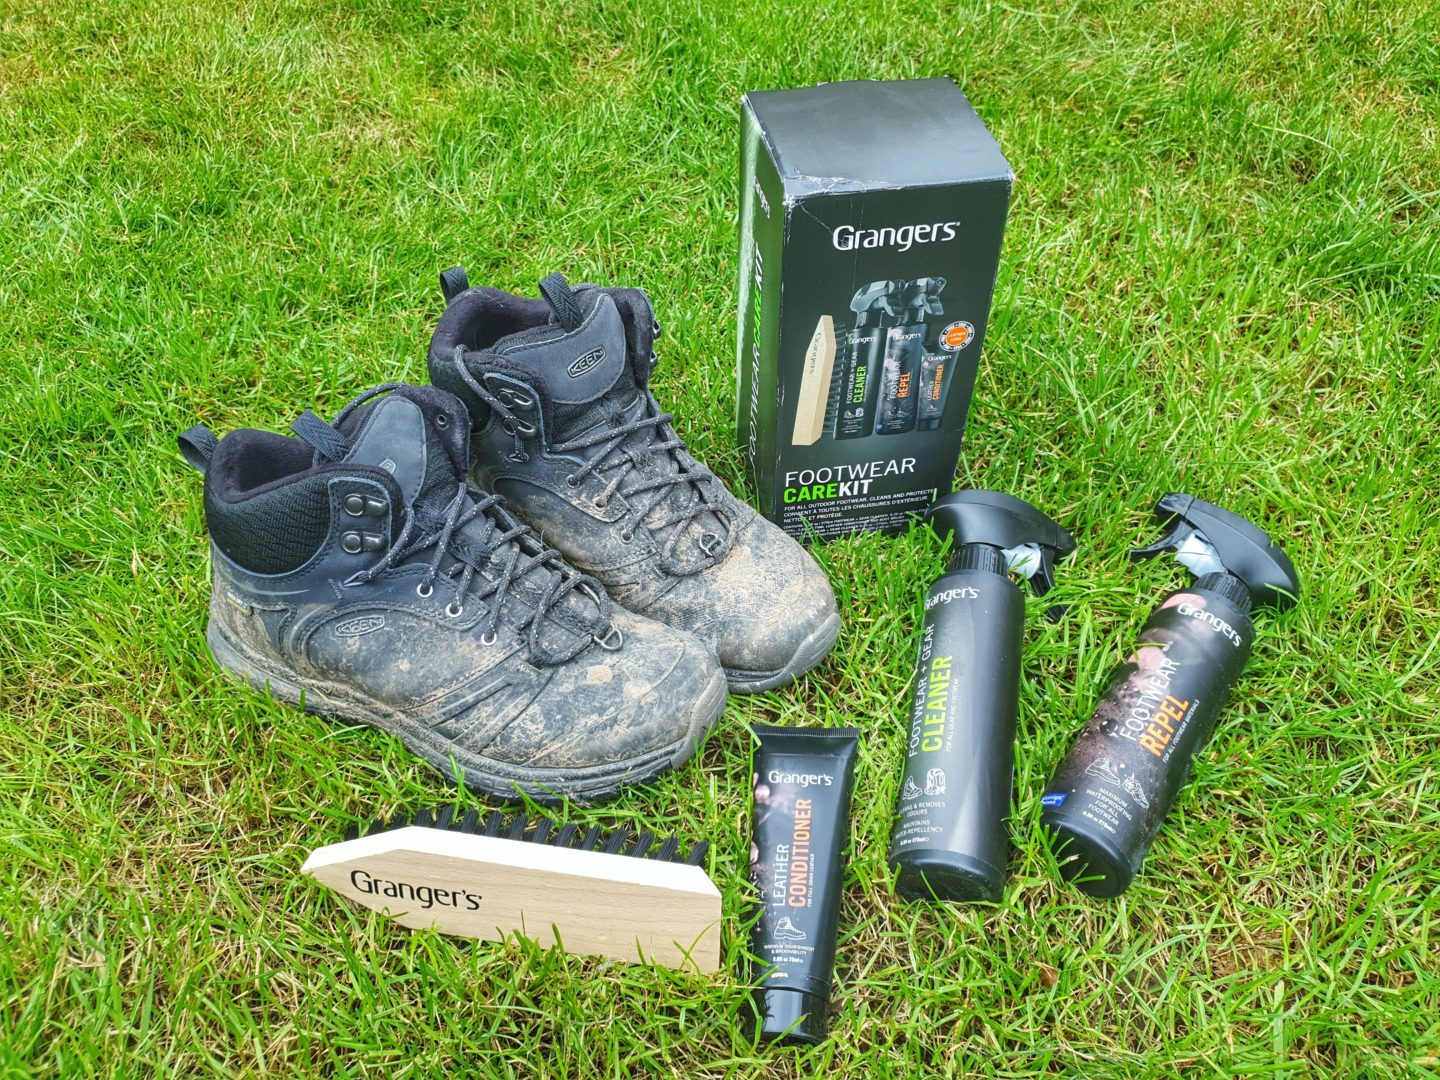 Grangers Footwear Care Kit and muddy boots